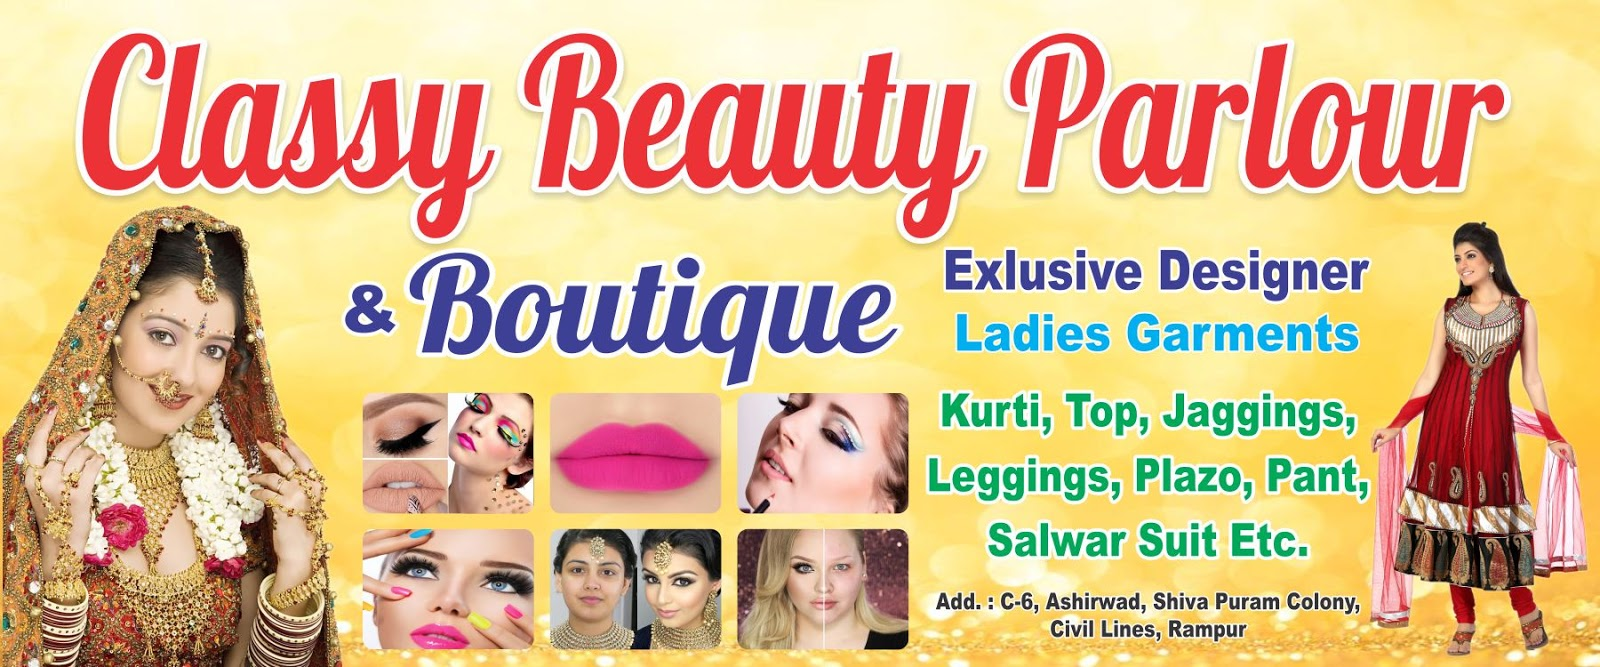 Ladies Beauty Parlour Flex Banner Designs Free Cdr Download Beauty Spa Salon Vector Templates Grapheecs Download Free Graphic Vectors And Psd File